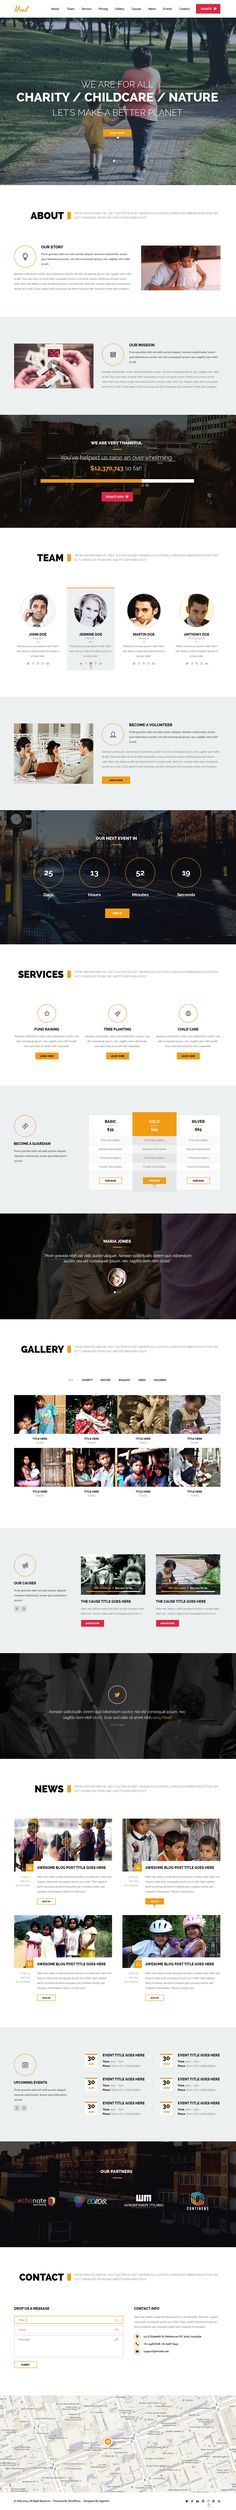 Heal is a New Premium Non-profit Charity #WordPress Theme that can be used to build a gorgeous website for an #NGO or #Charity foundation project.